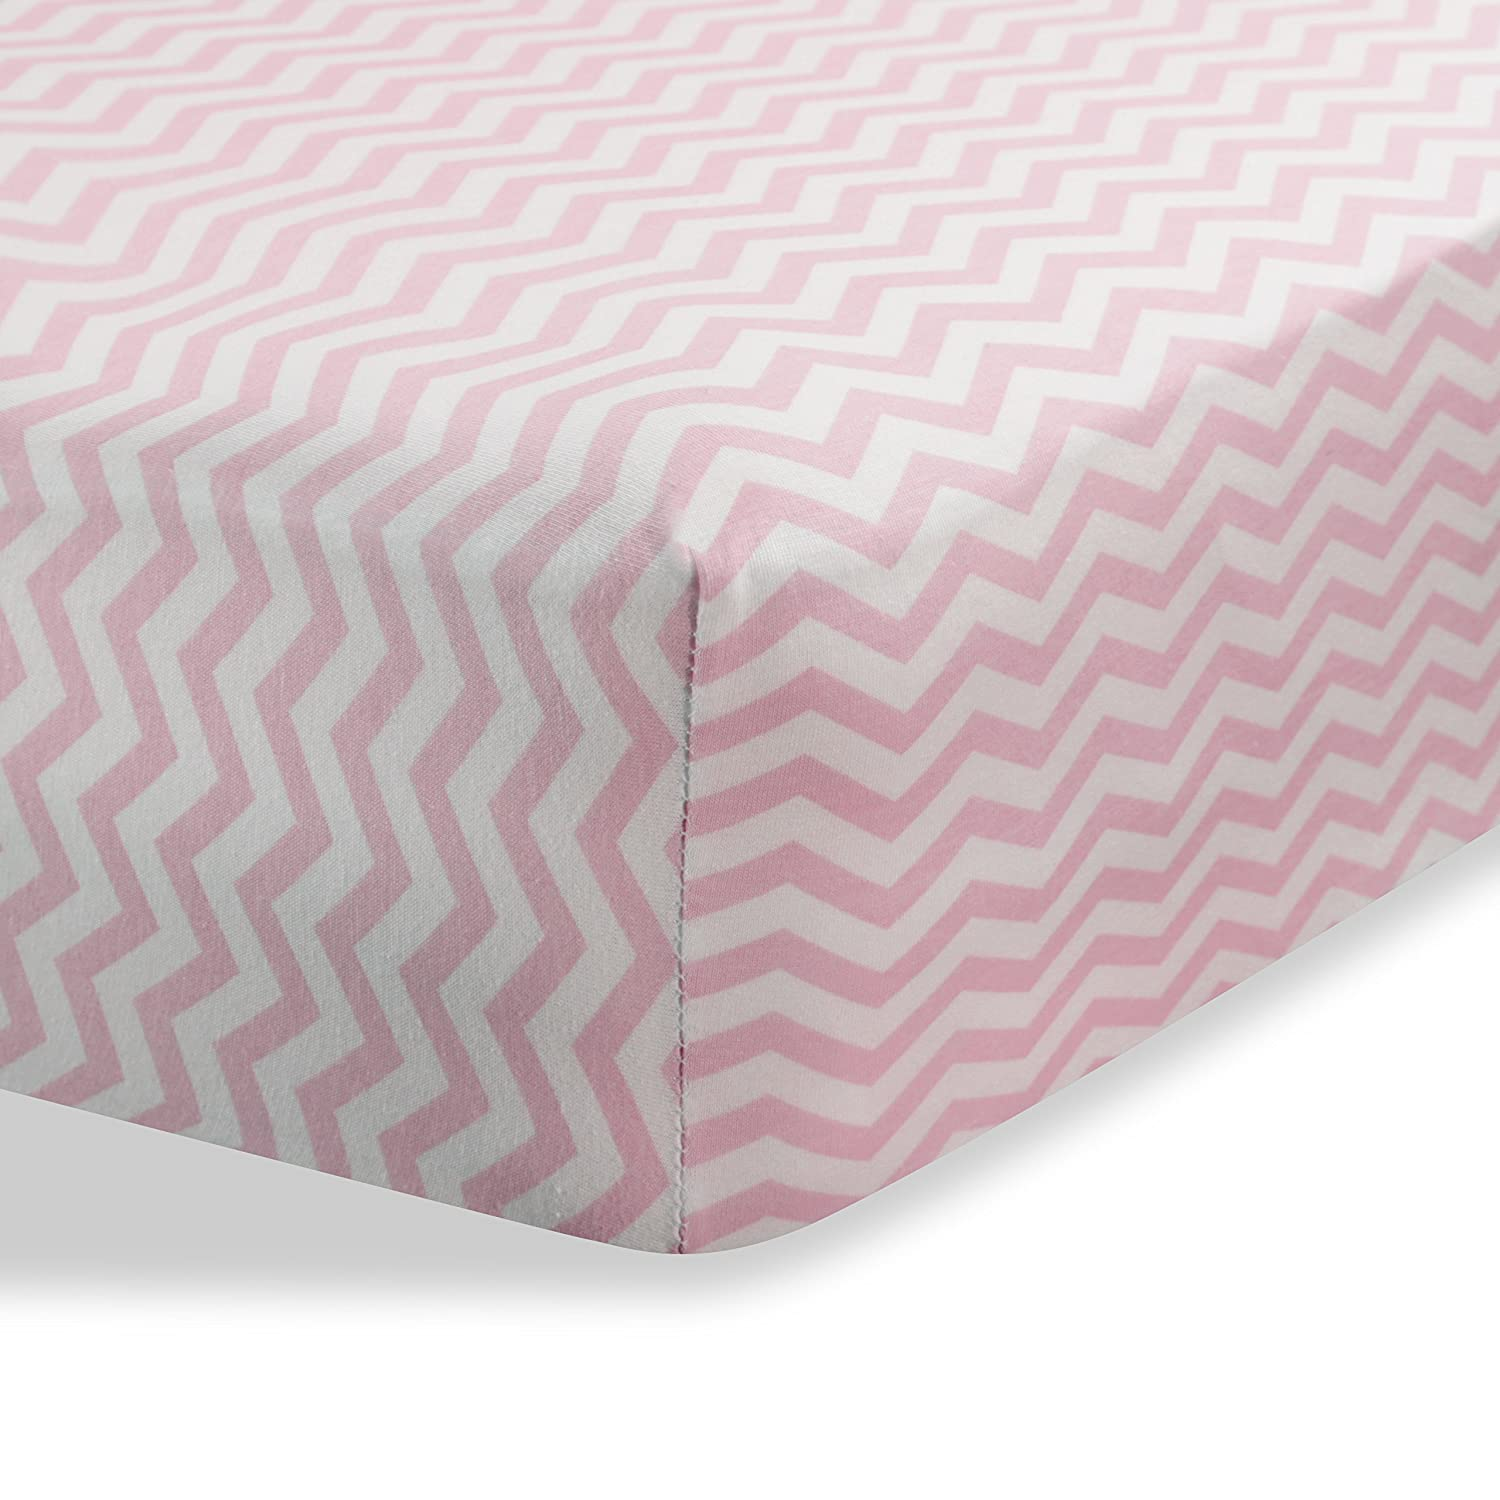 Abstract bassinet sheets cradle sheets for Baby/Infant Deep Fitted Soft Jersey Knit by Abstract 16 x 32 (Beige Argyle)